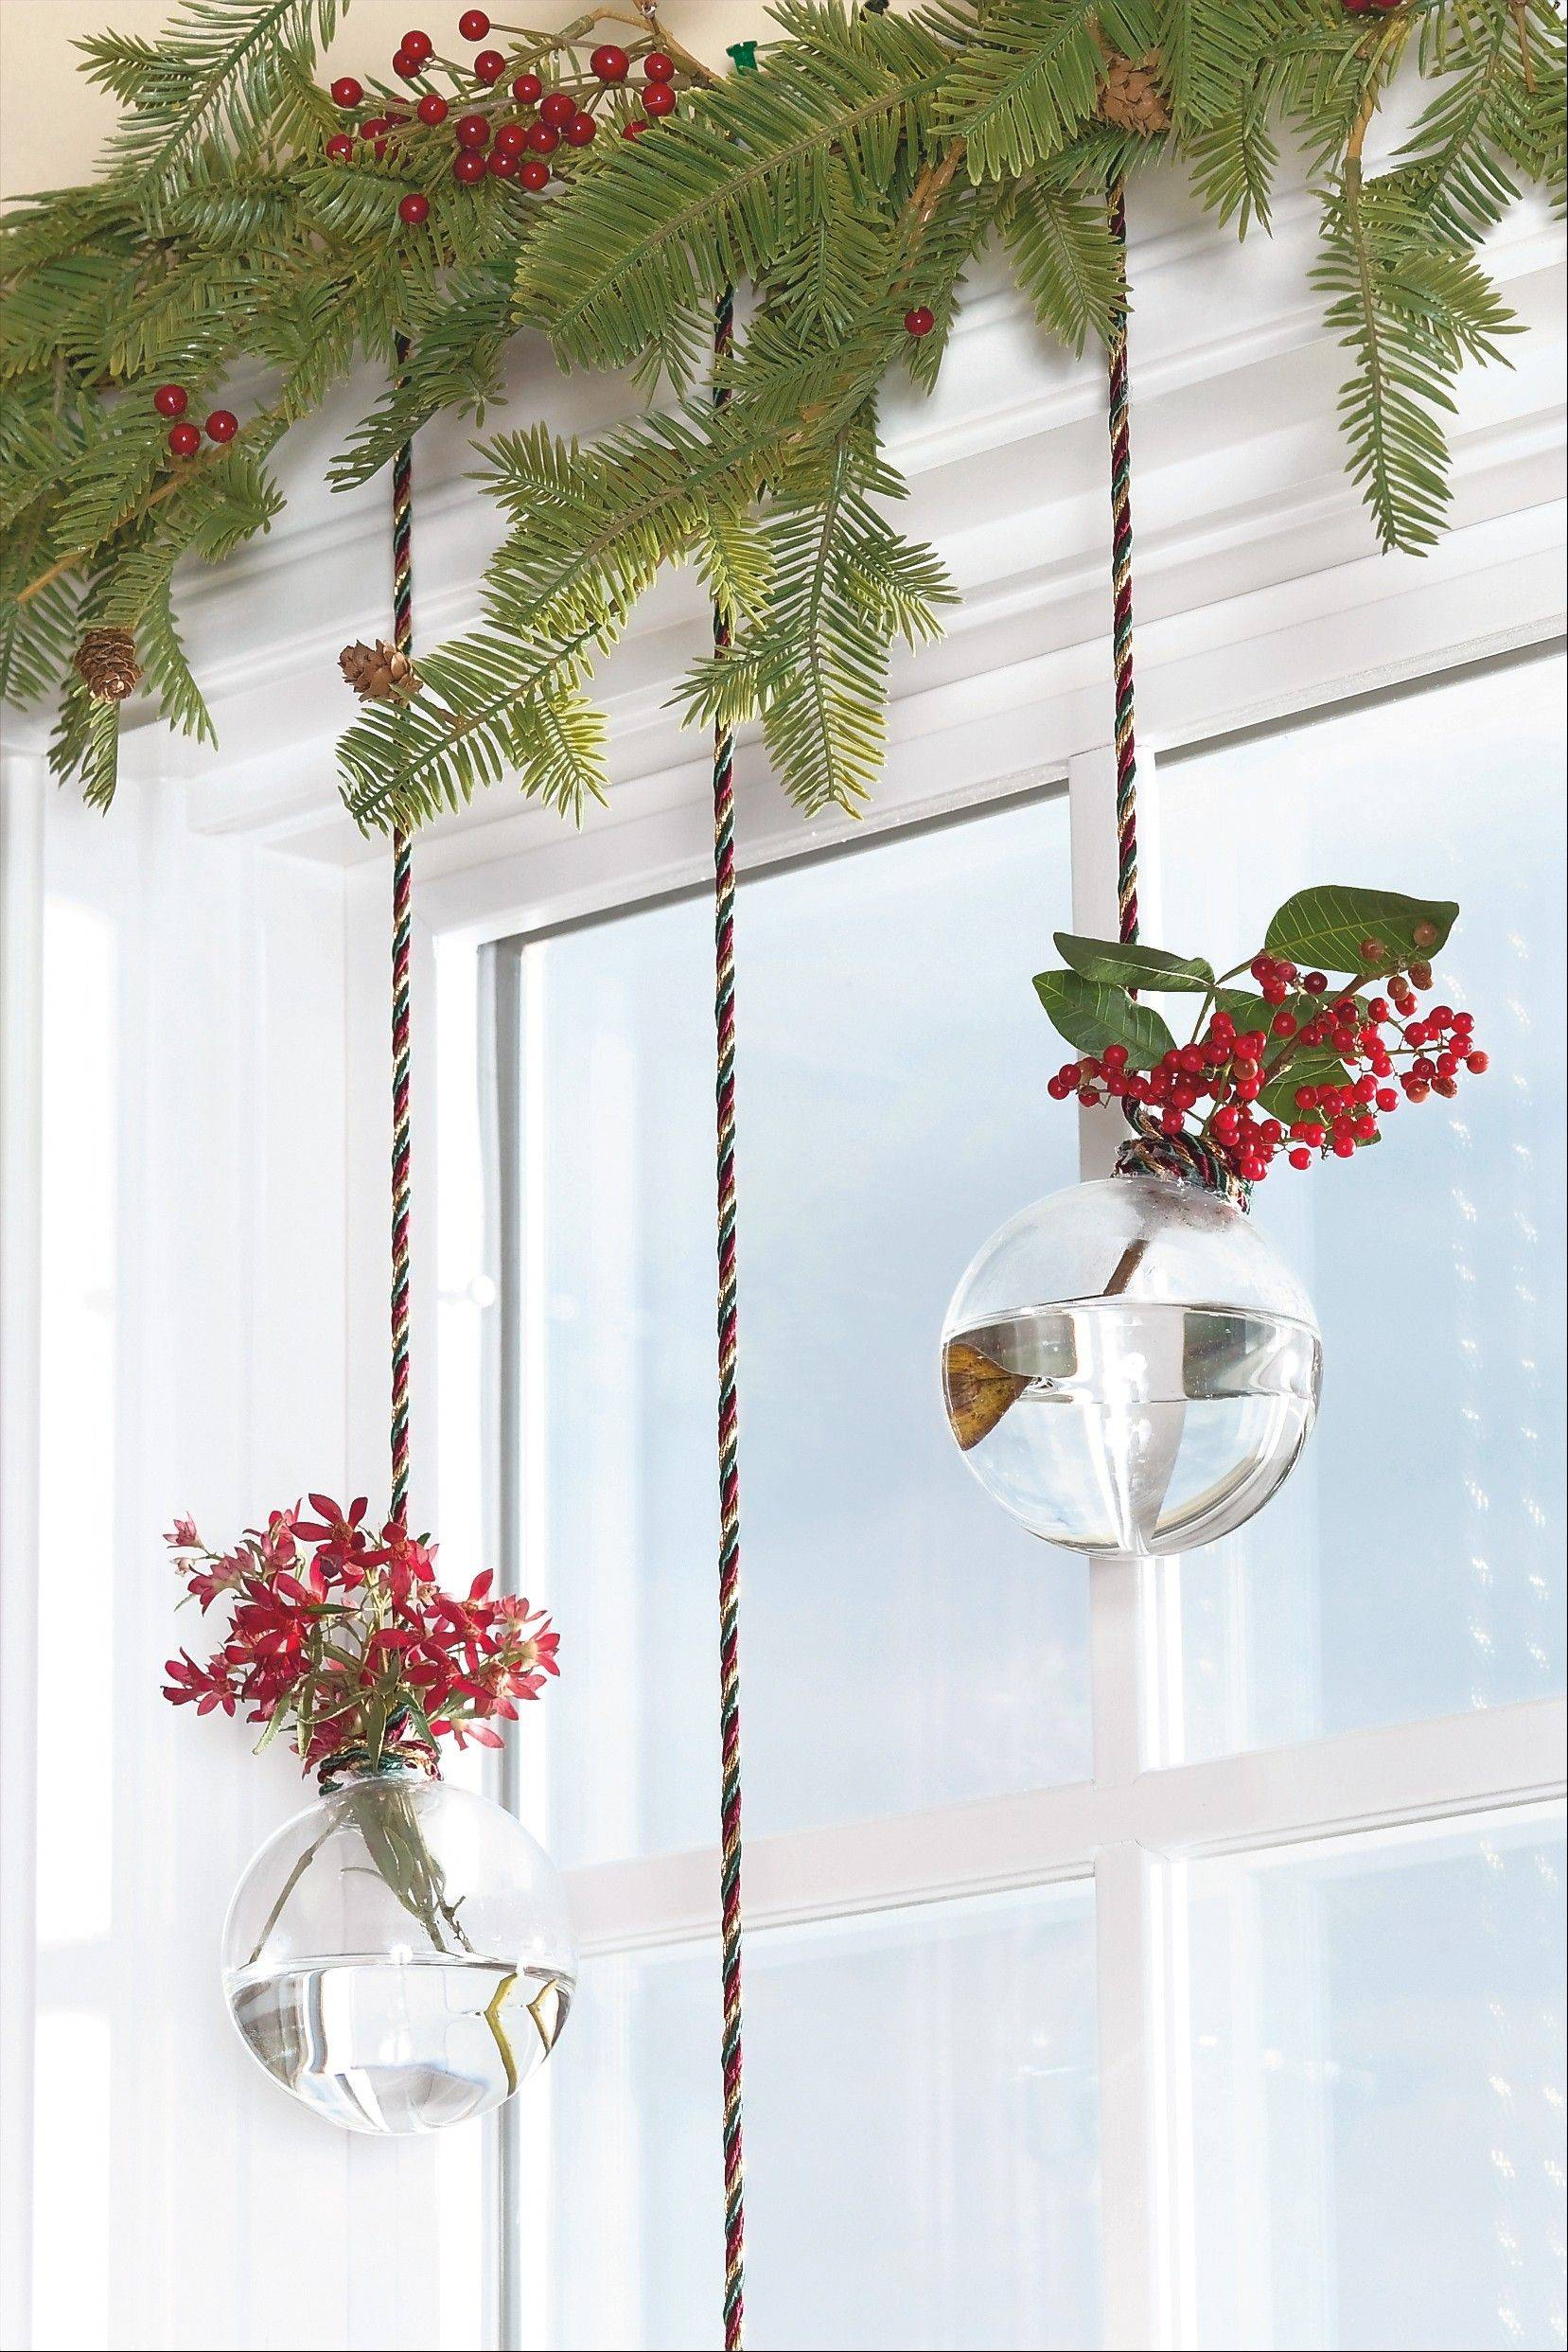 7. Dangling delights: Want something lovely to look at while you're washing dishes or rolling cookie dough? Embellish your windows with see-through ornaments filled with flowers. First, remove the ornaments' hooks or metal tops. Cut a length of holiday-hued cording, and hot glue one end of the cord around the ornament's neck. Trim the cording to the desired length. Fill the ornament with a small amount of water and add flowers or greenery. Knot the unglued cord end for security, and tack it to the window trim. Repeat for remaining ornaments. Vary the look by staggering the ornaments' heights or by opting for colored balls dangling from metallic ribbons.